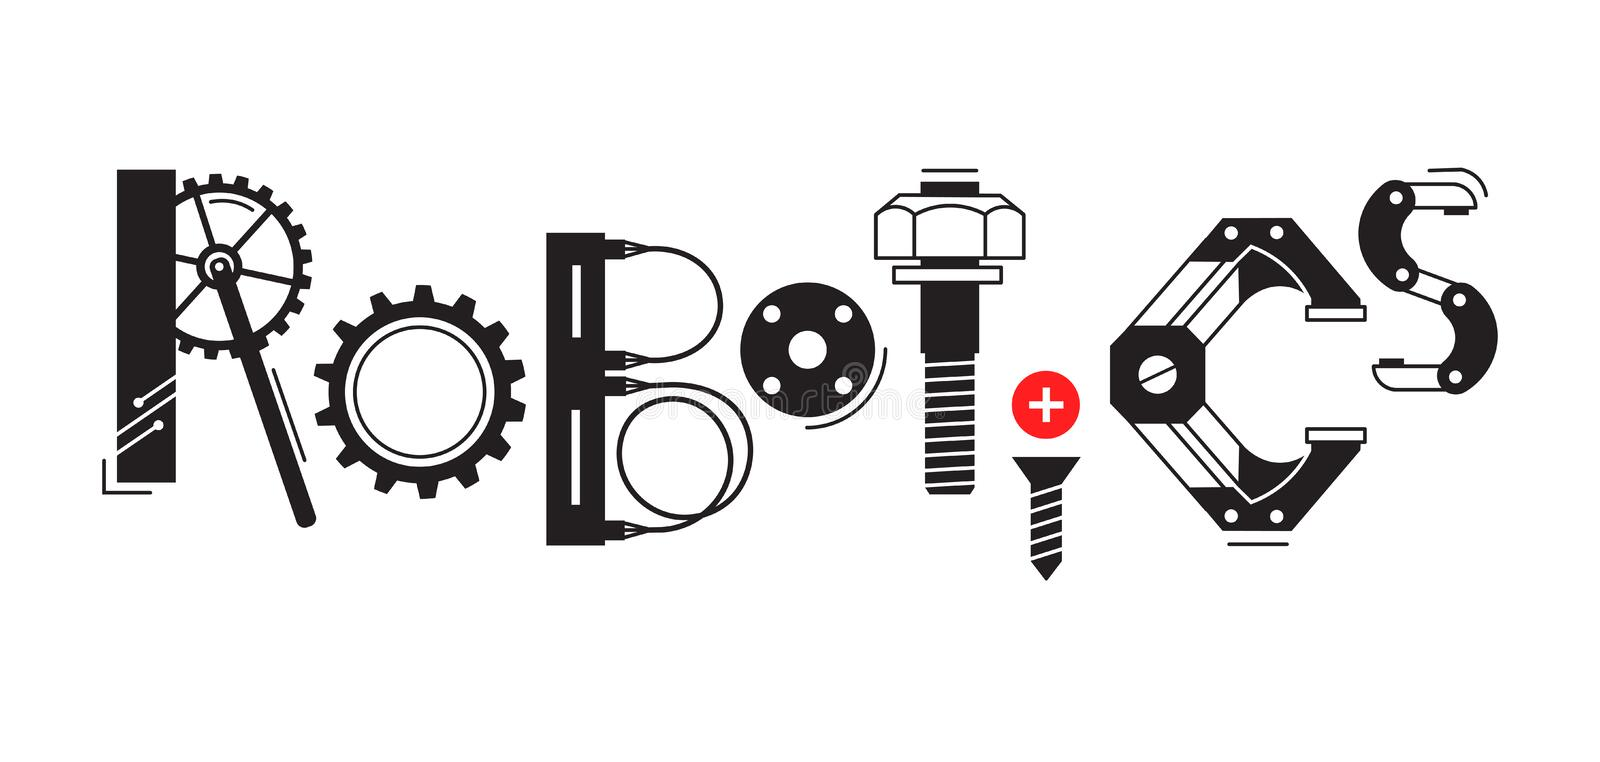 Robotics word. The inscription and letters are stylized in the form of details of robots and mechanisms. royalty free illustration